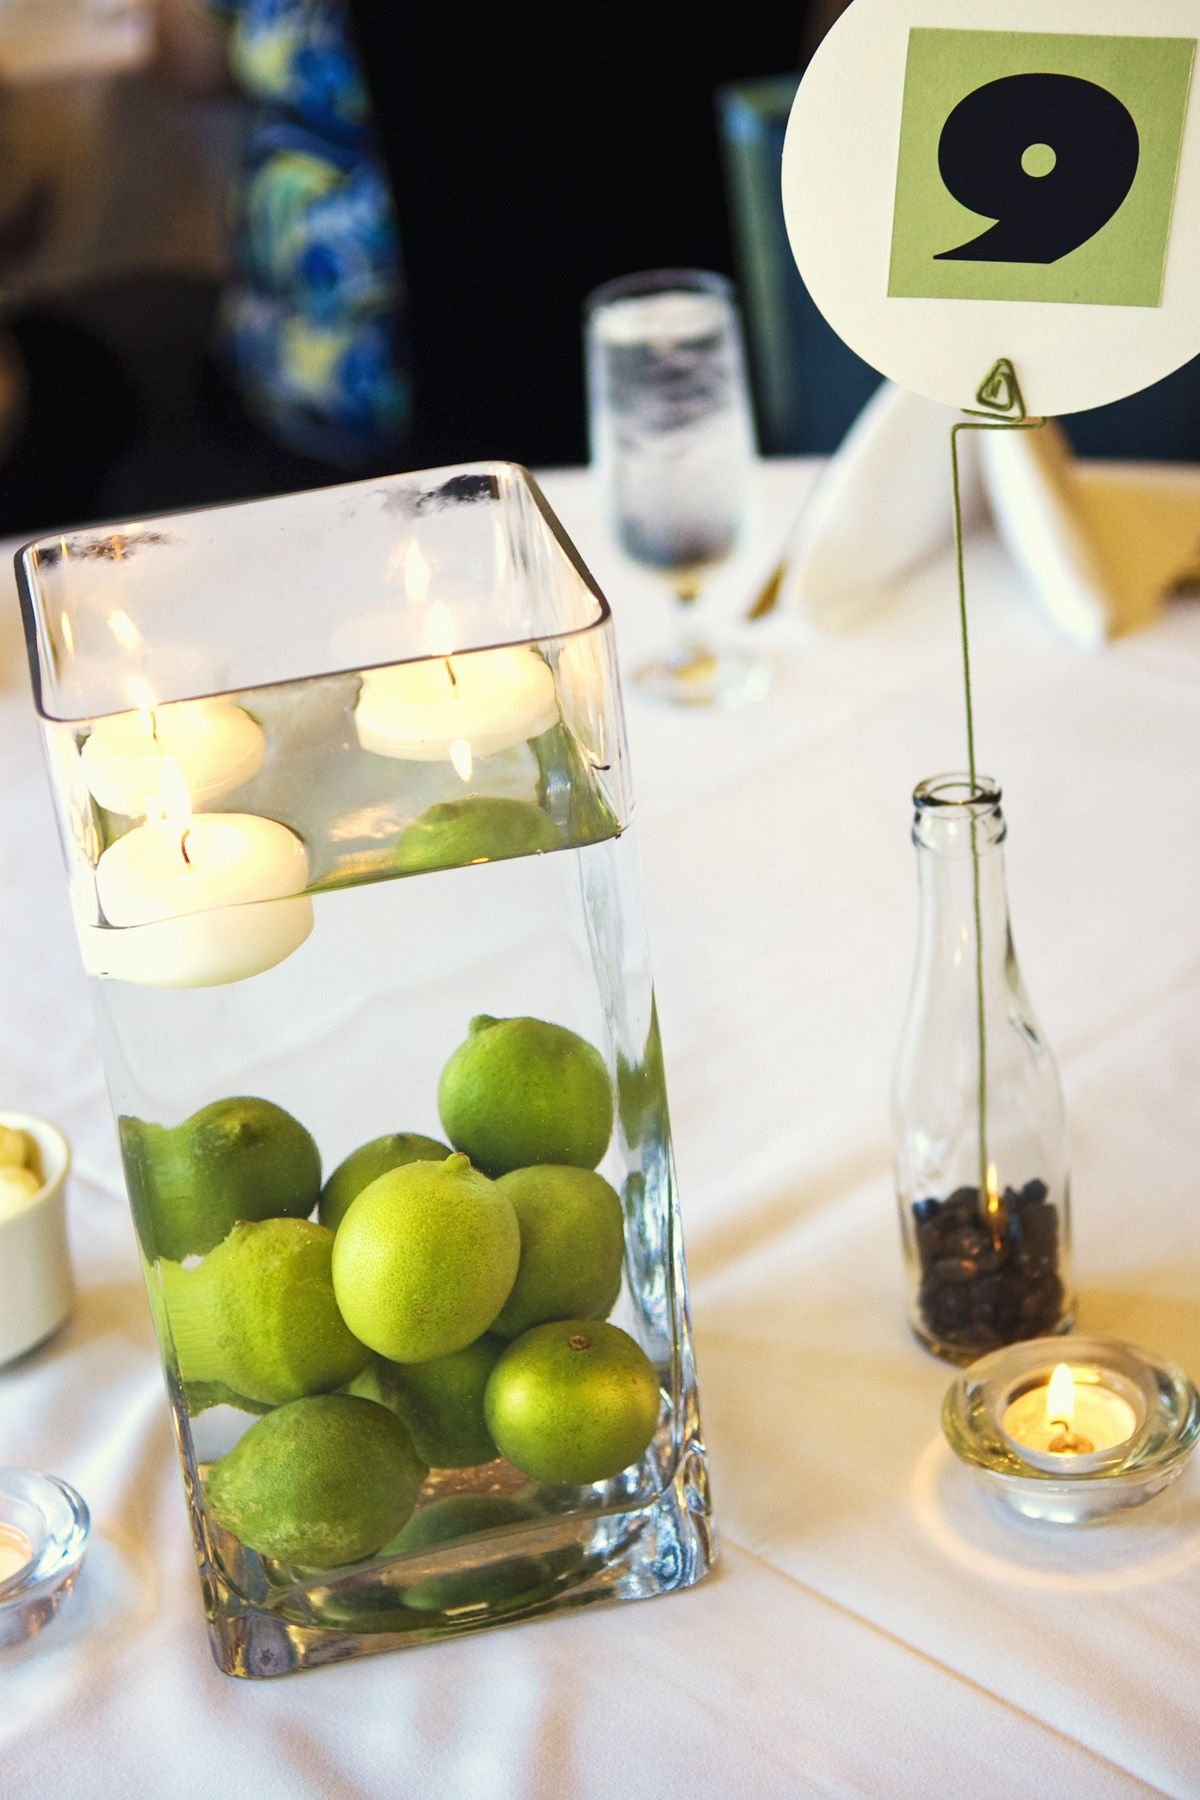 Unique Centerpieces, Weddings | Pinterest | Centerpieces, Lime ...